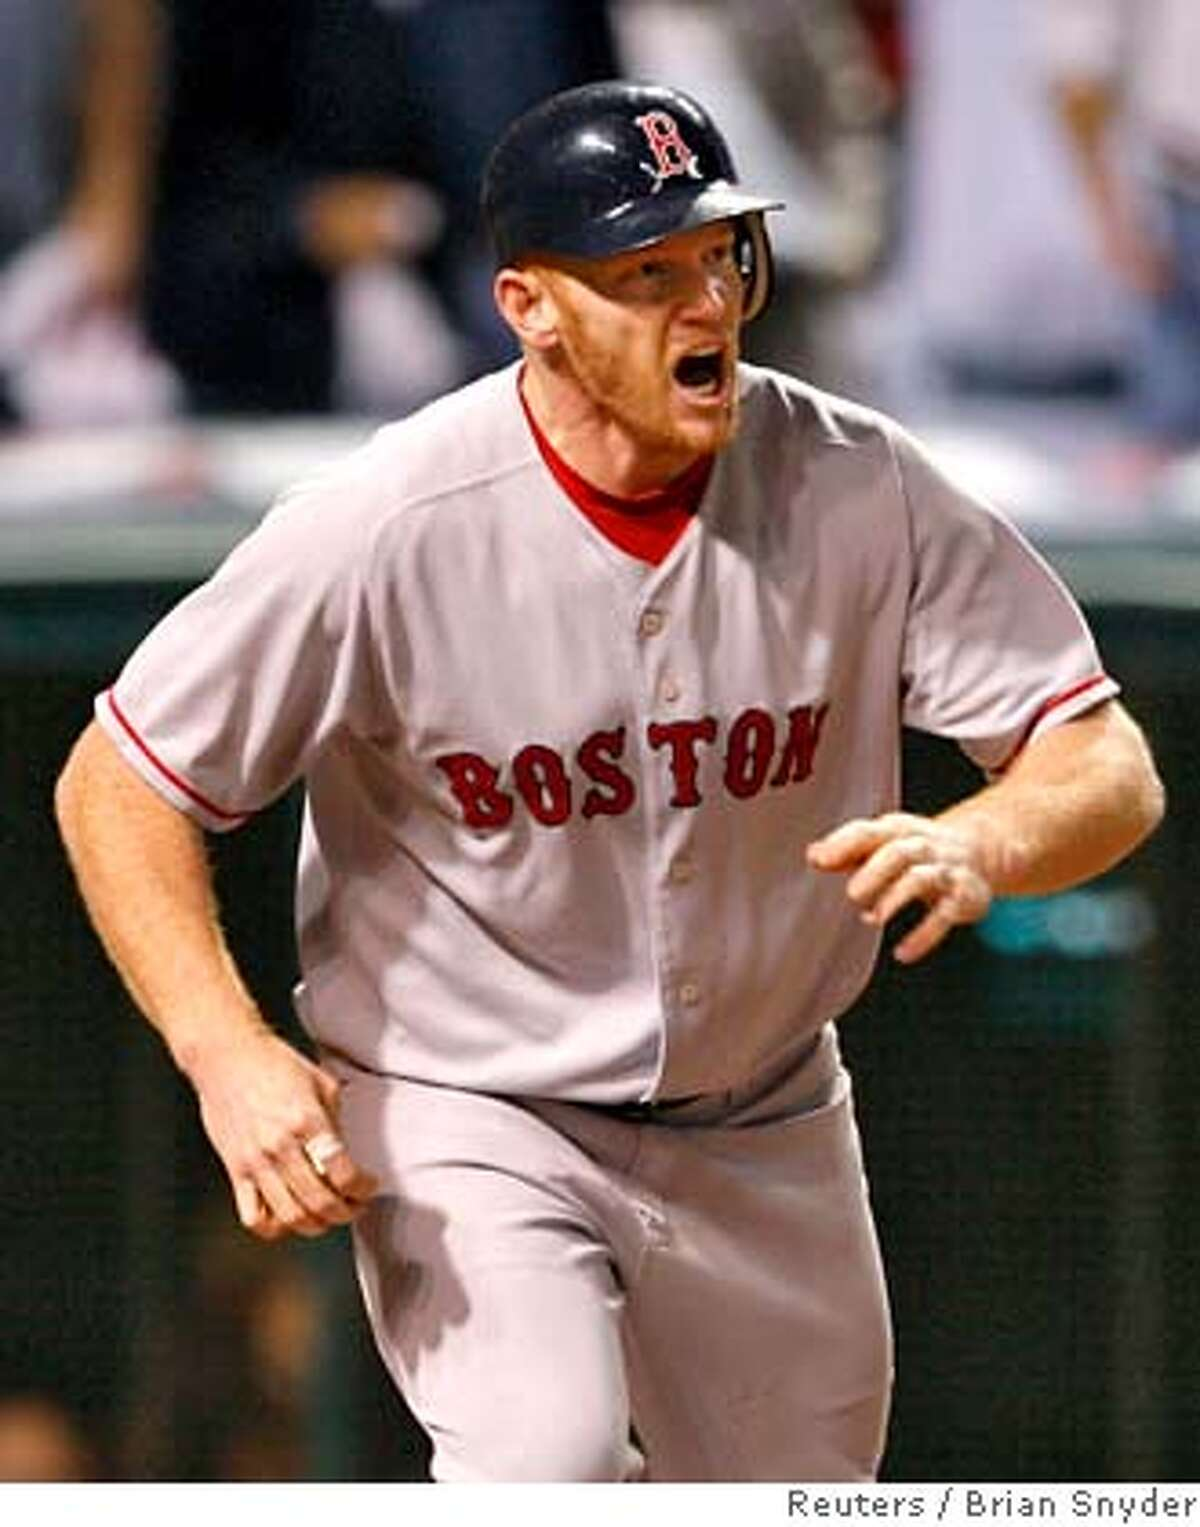 Boston Red Sox hitter Bobby Kielty reacts as his fly ball is caught with the bases loaded in the fifth inning of play against the Cleveland Indians in Game 5 of Major League Baseball's ALCS playoff series in Cleveland, October 18, 2007. REUTERS/Brian Snyder (UNITED STATES) 0